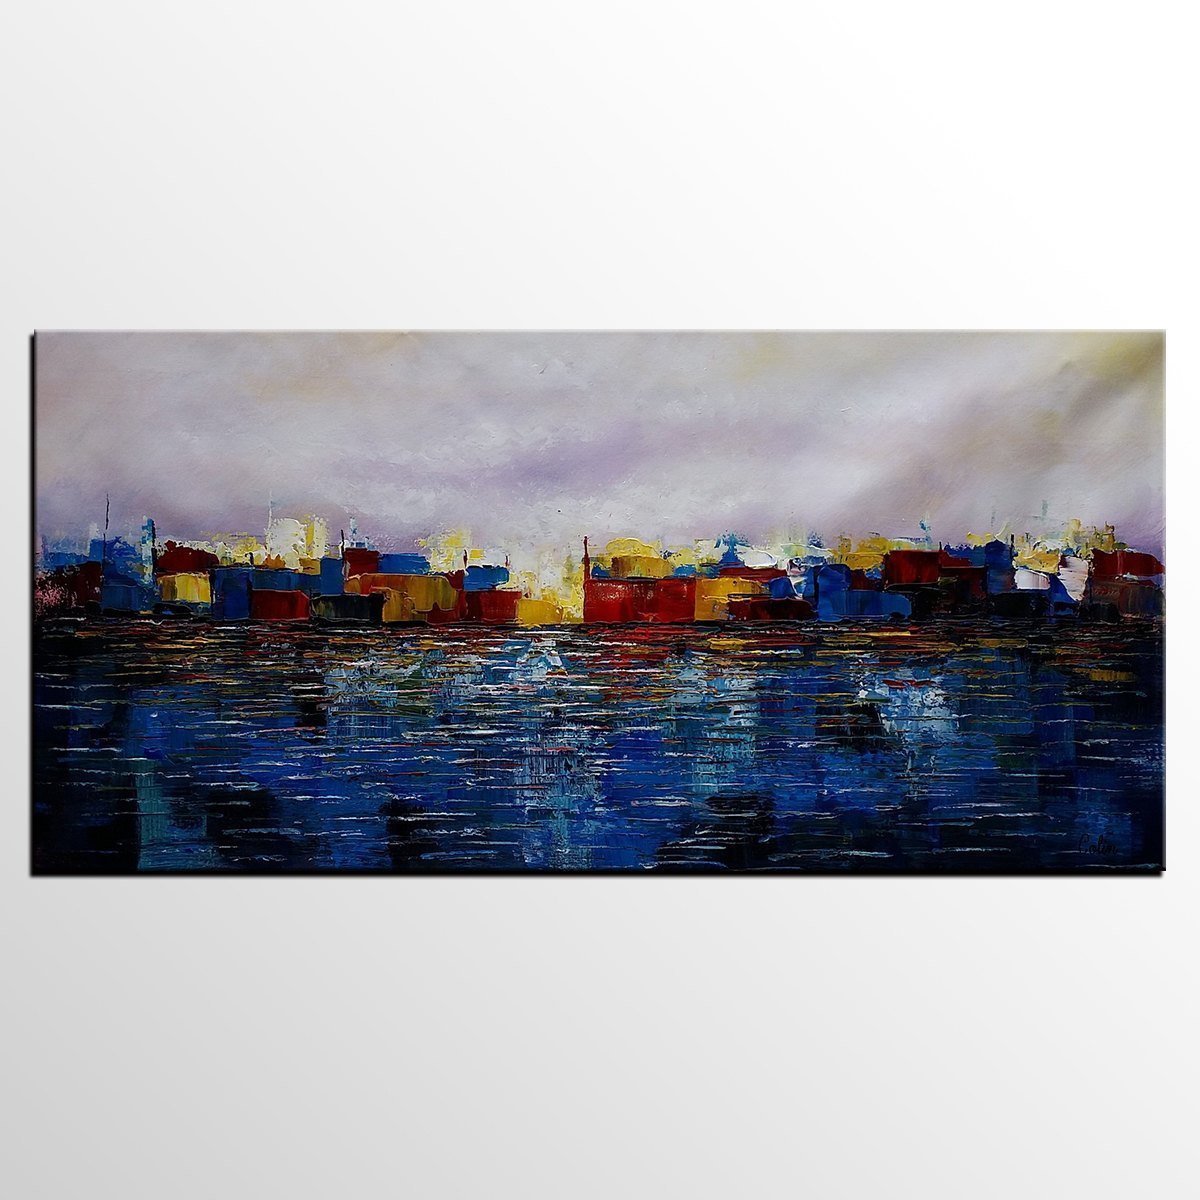 Abstract Artwork, Contemporary Wall Art, Modern Art, Cityscape Painting, Art for Sale, Abstract Art Painting, Living Room Wall Art, Canvas Art - LargePantingArt.com